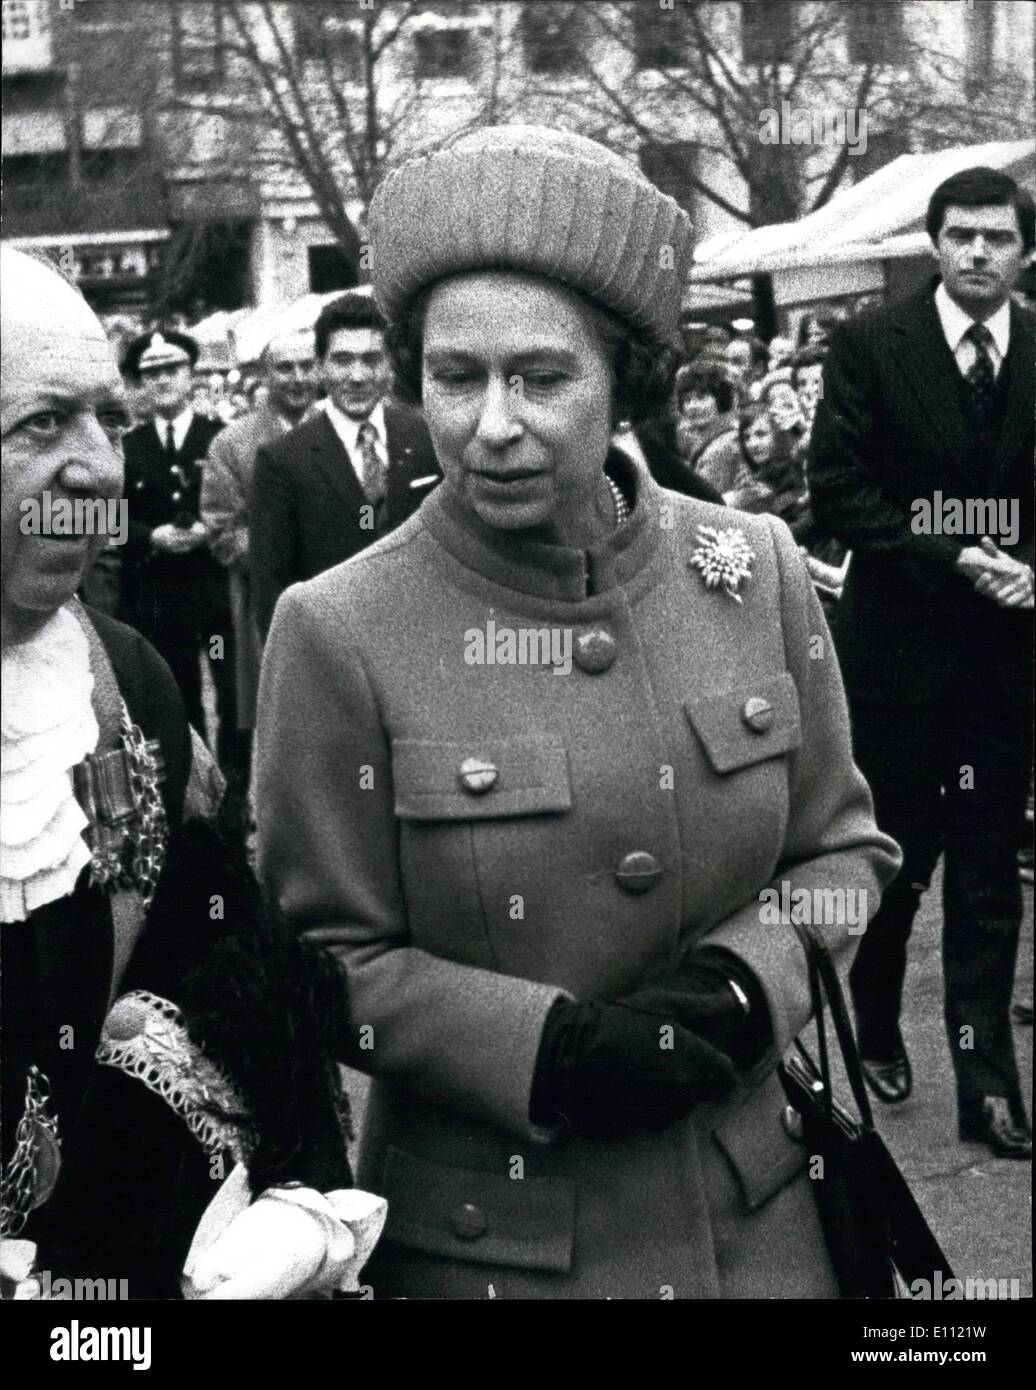 Apr. 04, 1975 - Japanese Detective Shadows The Queen to Study Security: A Japanese detective shadowed the Queen during her five-hour official visit to Norwich yesterday to observe British security in readiness for the Queen's State visit to Japan next month. He was Inspector Takao Lguchi, 34, personal bodyguard to Crown Prince Akihito. The Queen visited Norwich to attend a Thanksgiving service at the cathedral to mark 25 years of effort to raise £500,000 for restoration work by the Friends of Norwich Cathedral, of which she is Patron - Stock Image